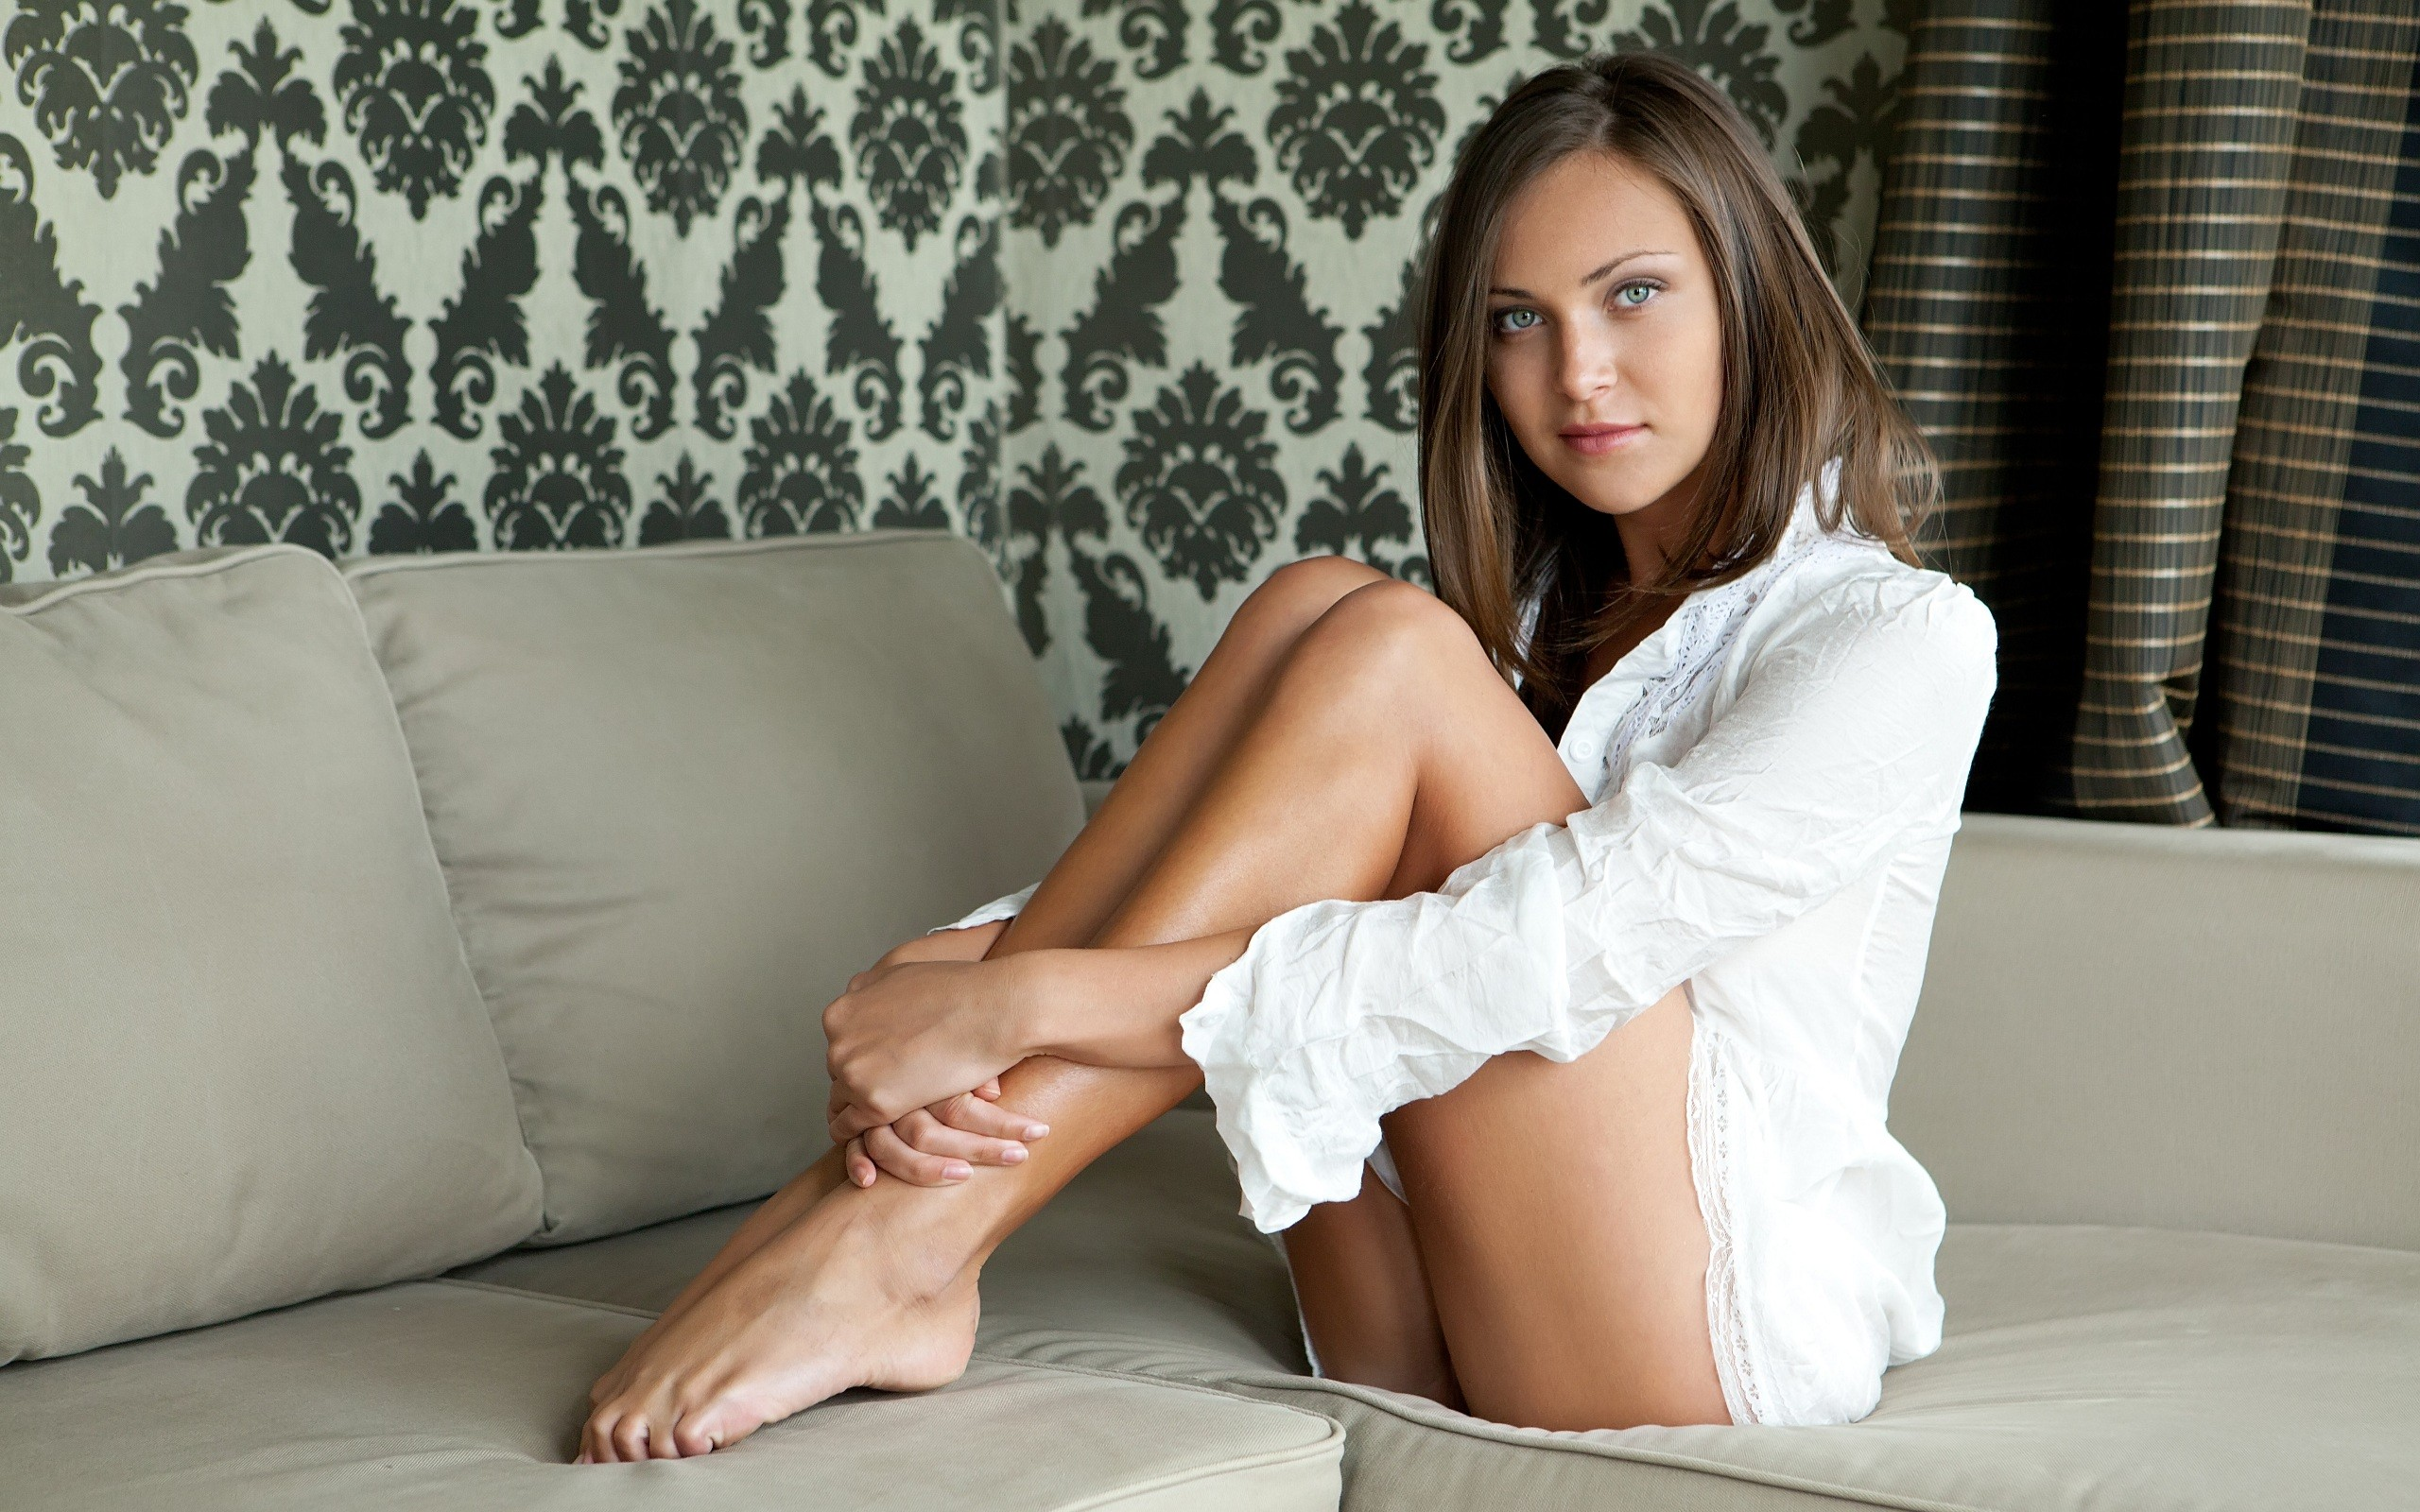 brunettes legs woman couch